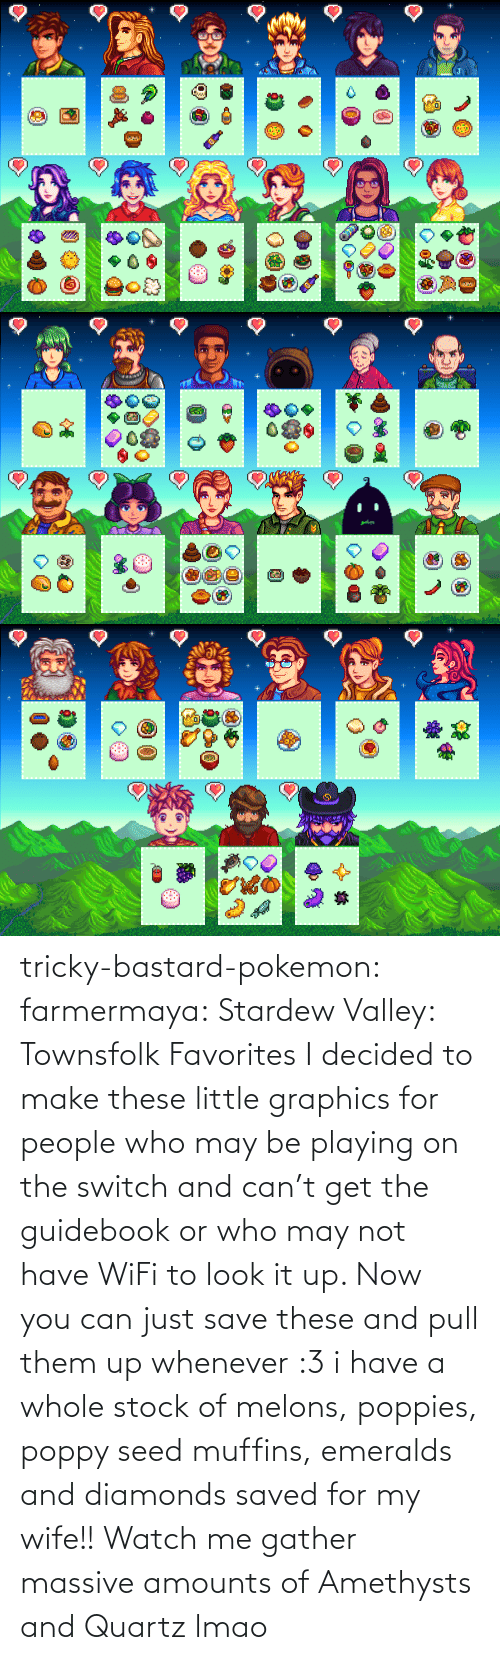 switch: tricky-bastard-pokemon:  farmermaya: Stardew Valley: Townsfolk Favorites  I decided to make these little graphics for people who may be playing on the switch and can't get the guidebook or who may not have WiFi to look it up. Now you can just save these and pull them up whenever :3   i have a whole stock of melons, poppies, poppy seed muffins, emeralds and diamonds saved for my wife!!    Watch me gather massive amounts of Amethysts and Quartz lmao